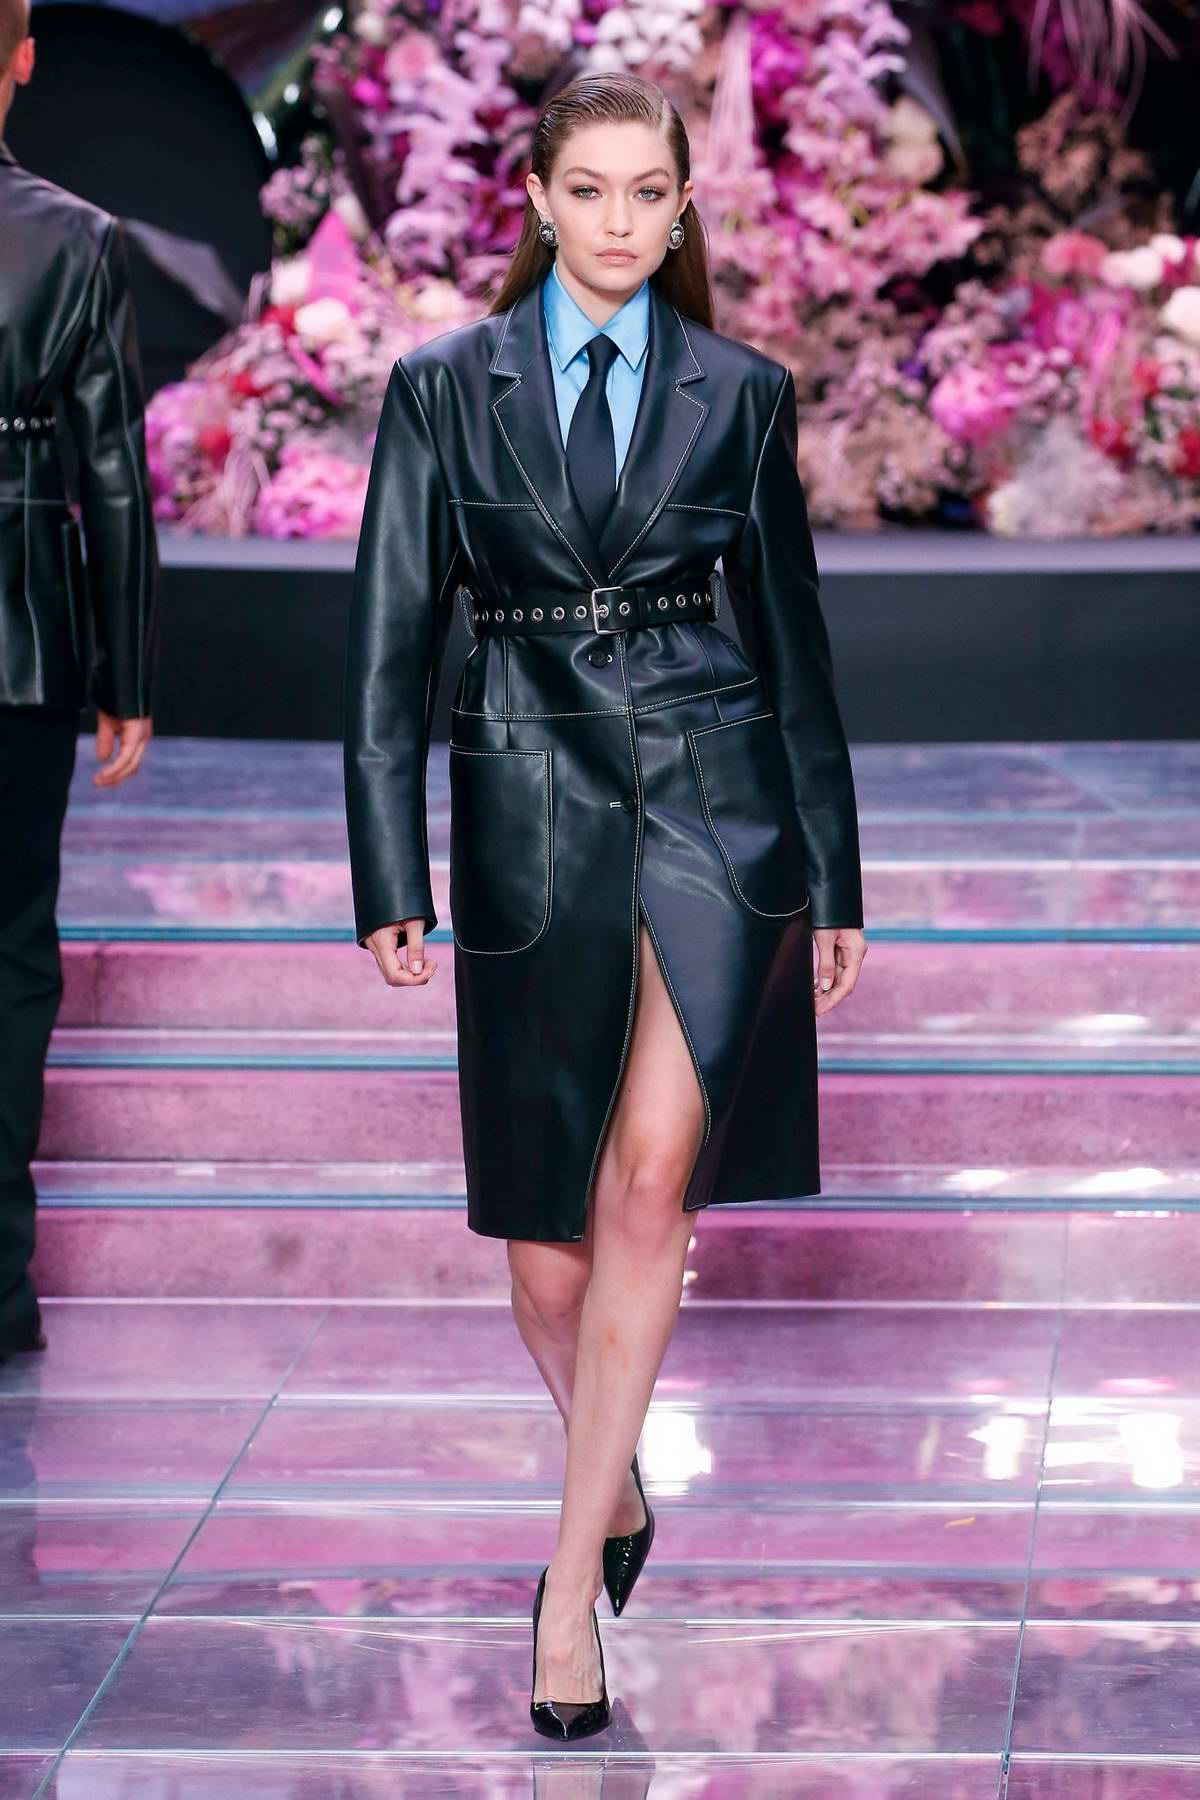 Gigi Hadid walks the runway during the Versace fashion show Spring/Summer 2020 in Milan, Italy